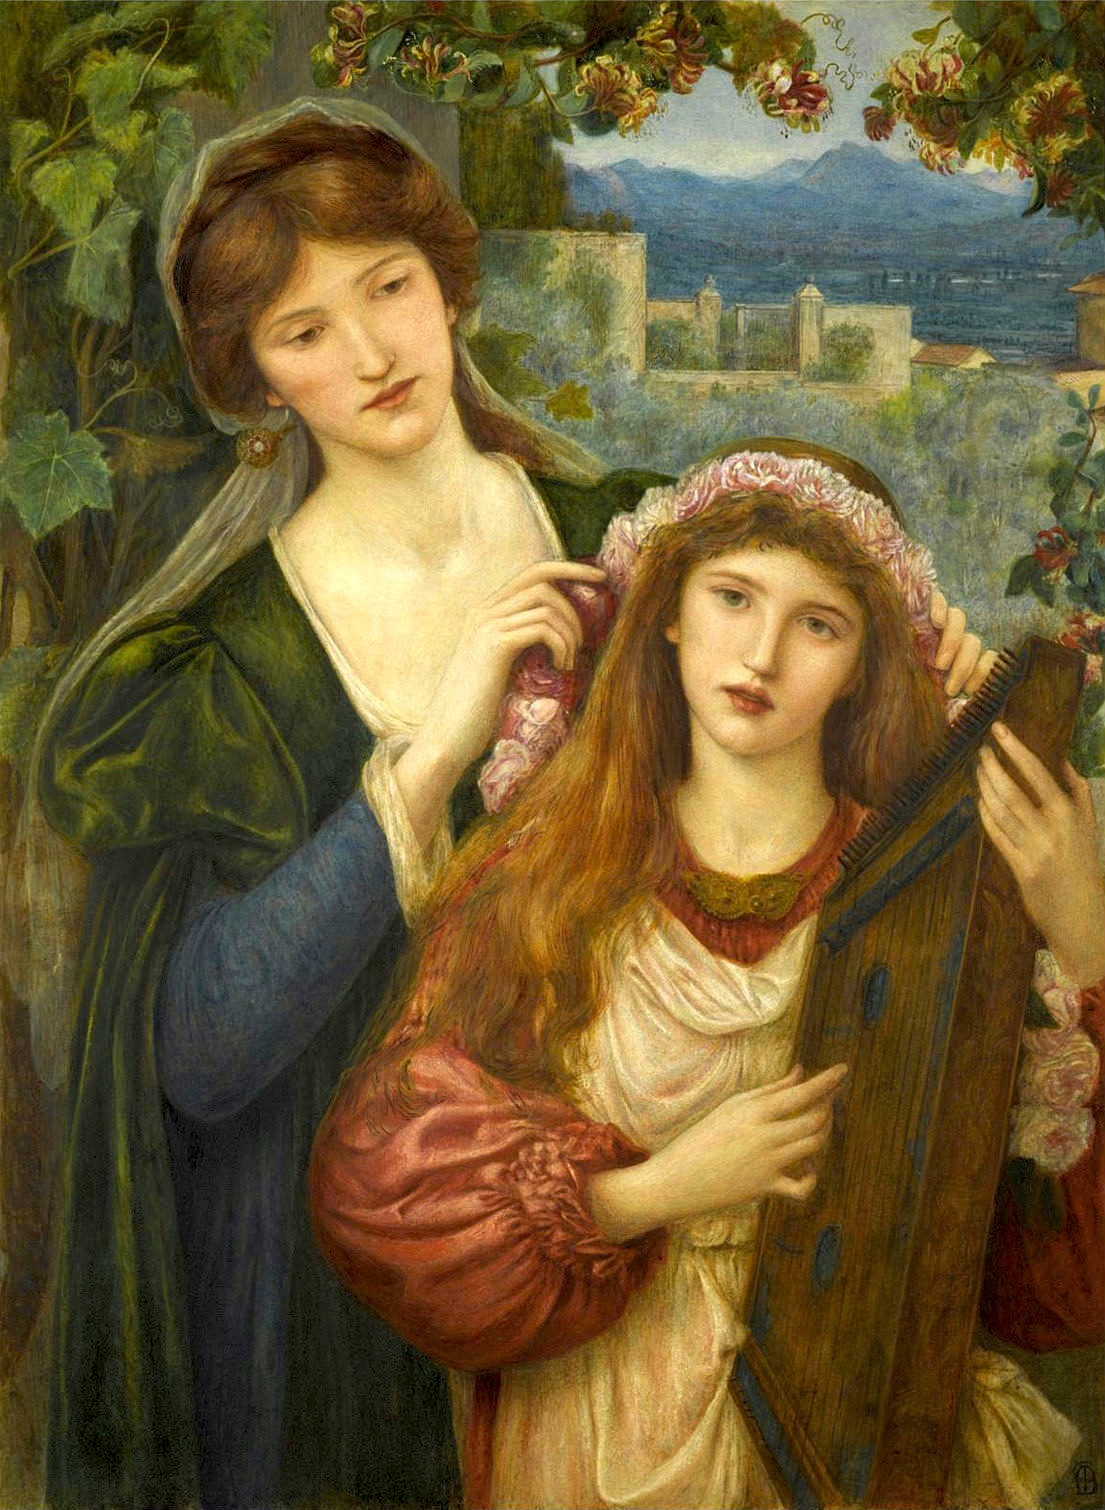 https://upload.wikimedia.org/wikipedia/commons/2/28/Marie_Spartali_Stillman_-_The_Childhood_of_Saint_Cecilia.jpg